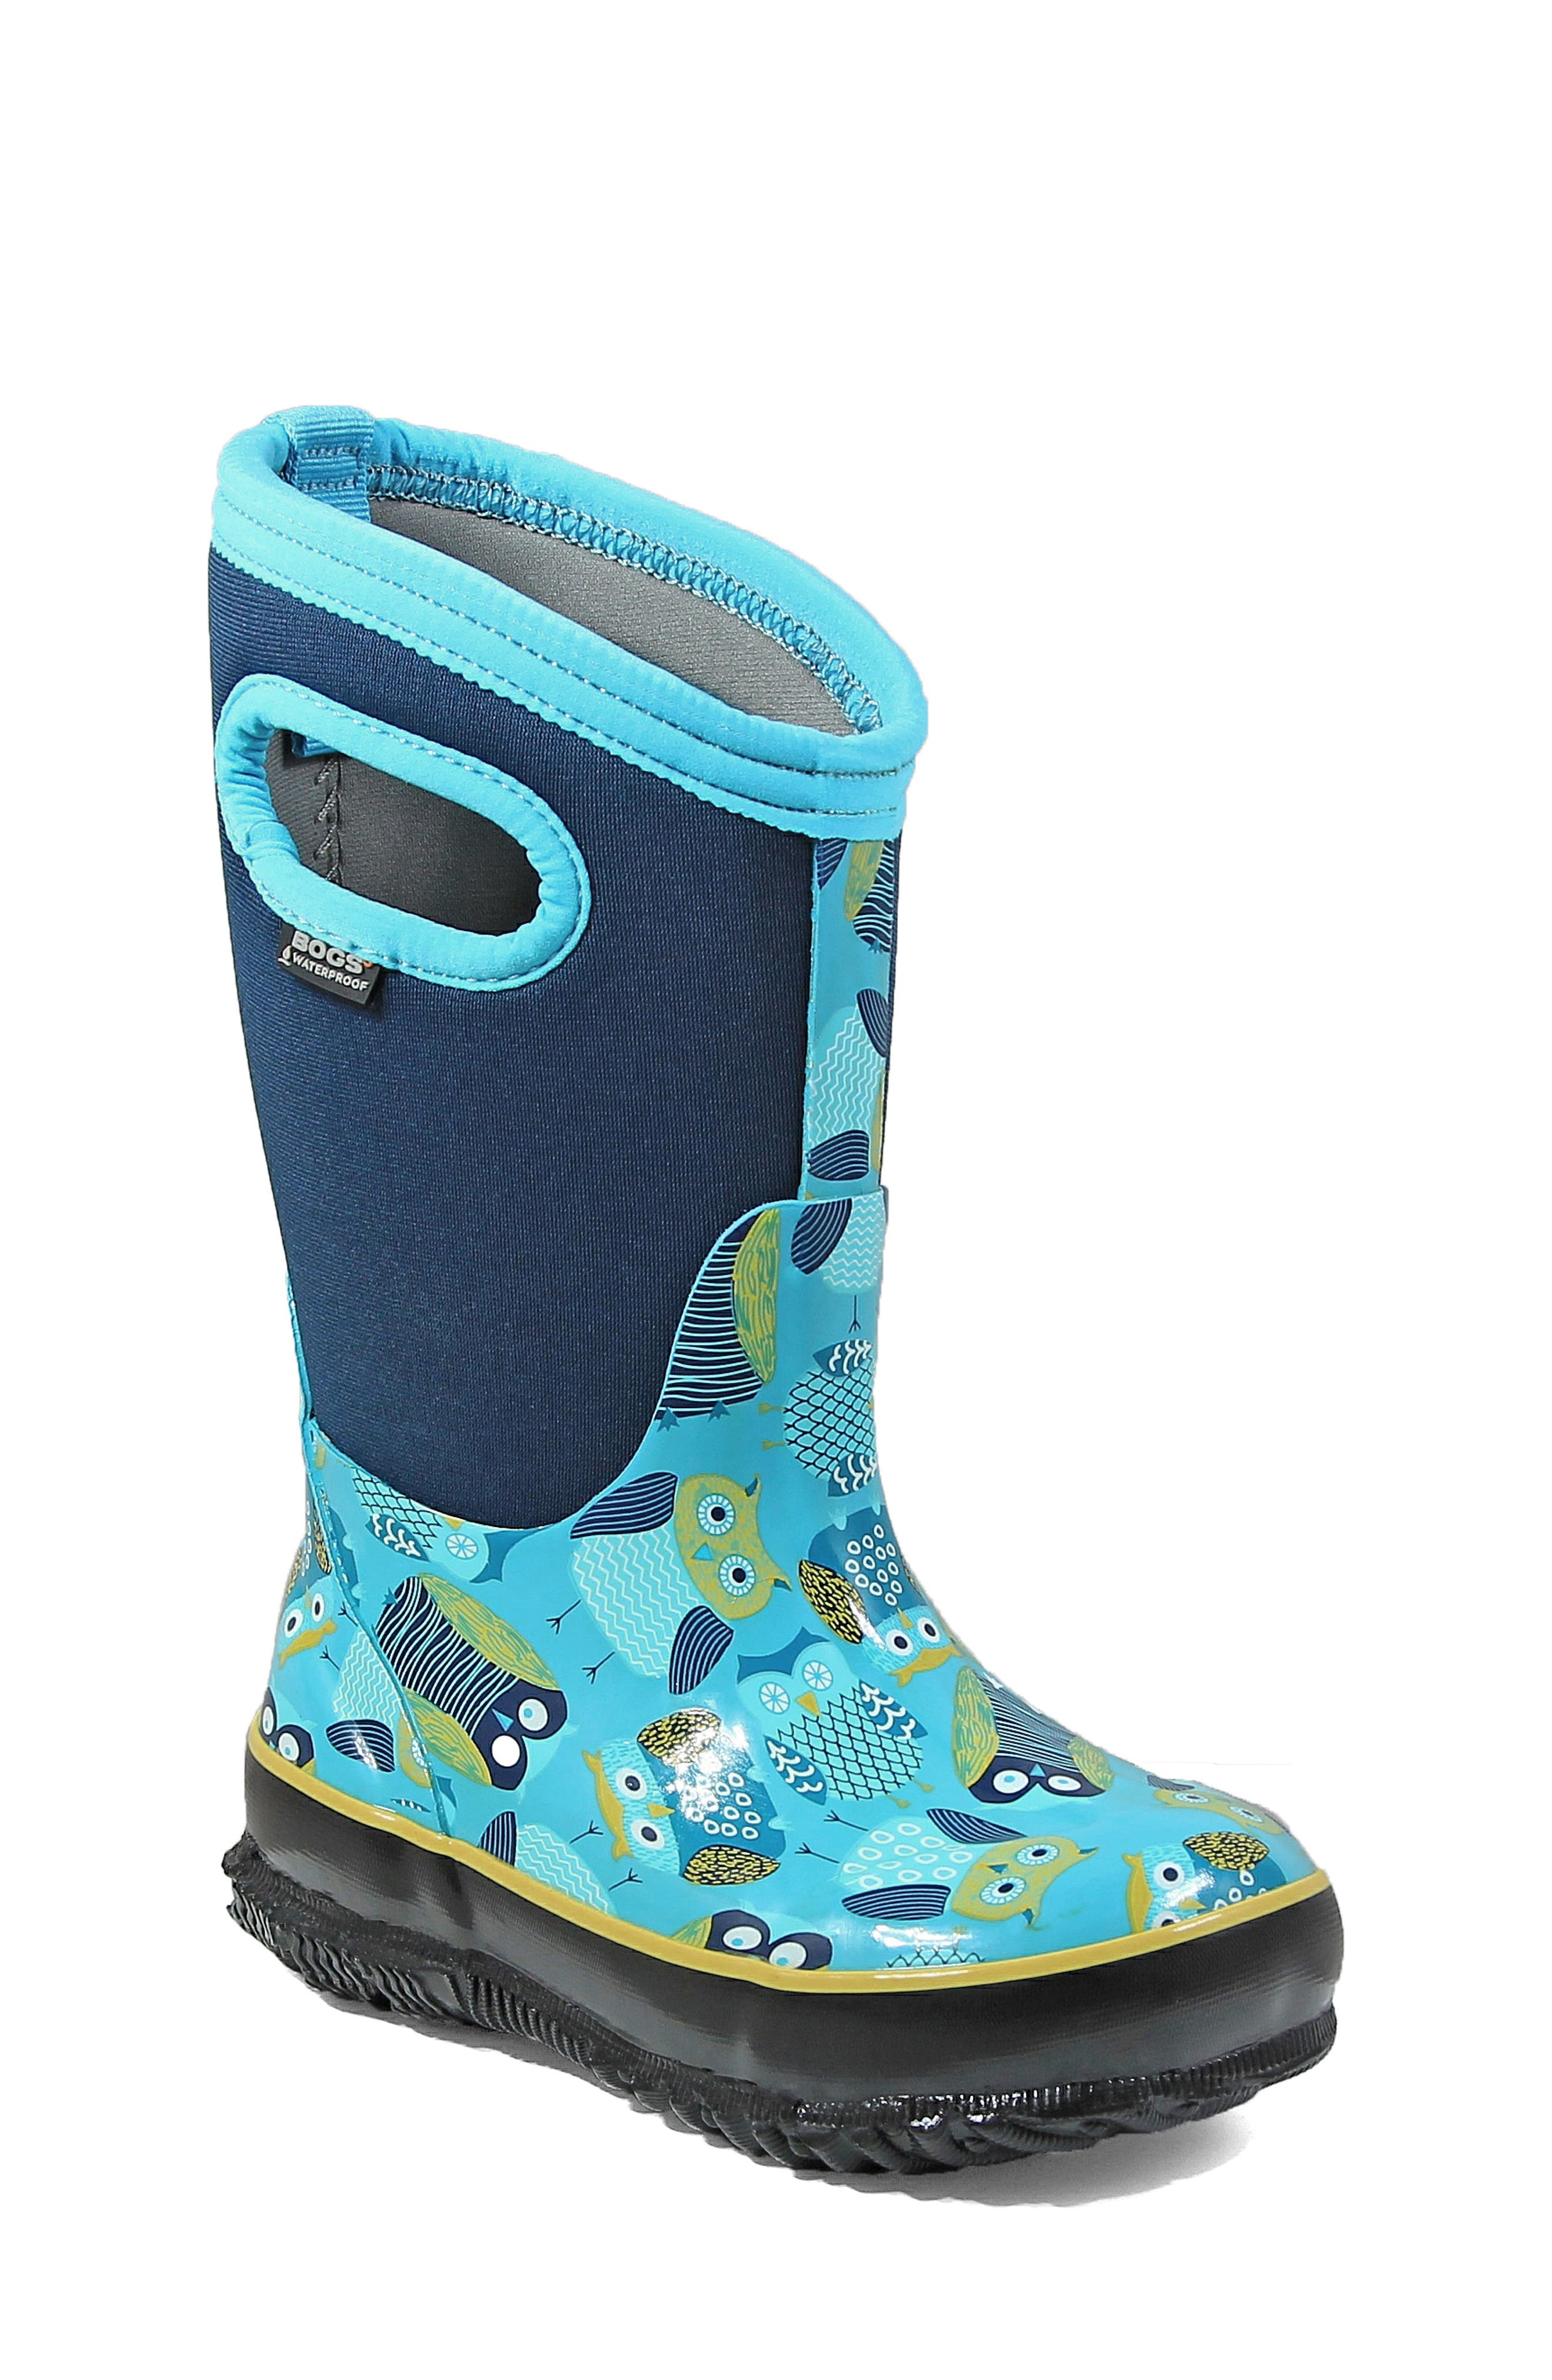 Classic Insulated Waterproof Owl Boot,                             Main thumbnail 1, color,                             460